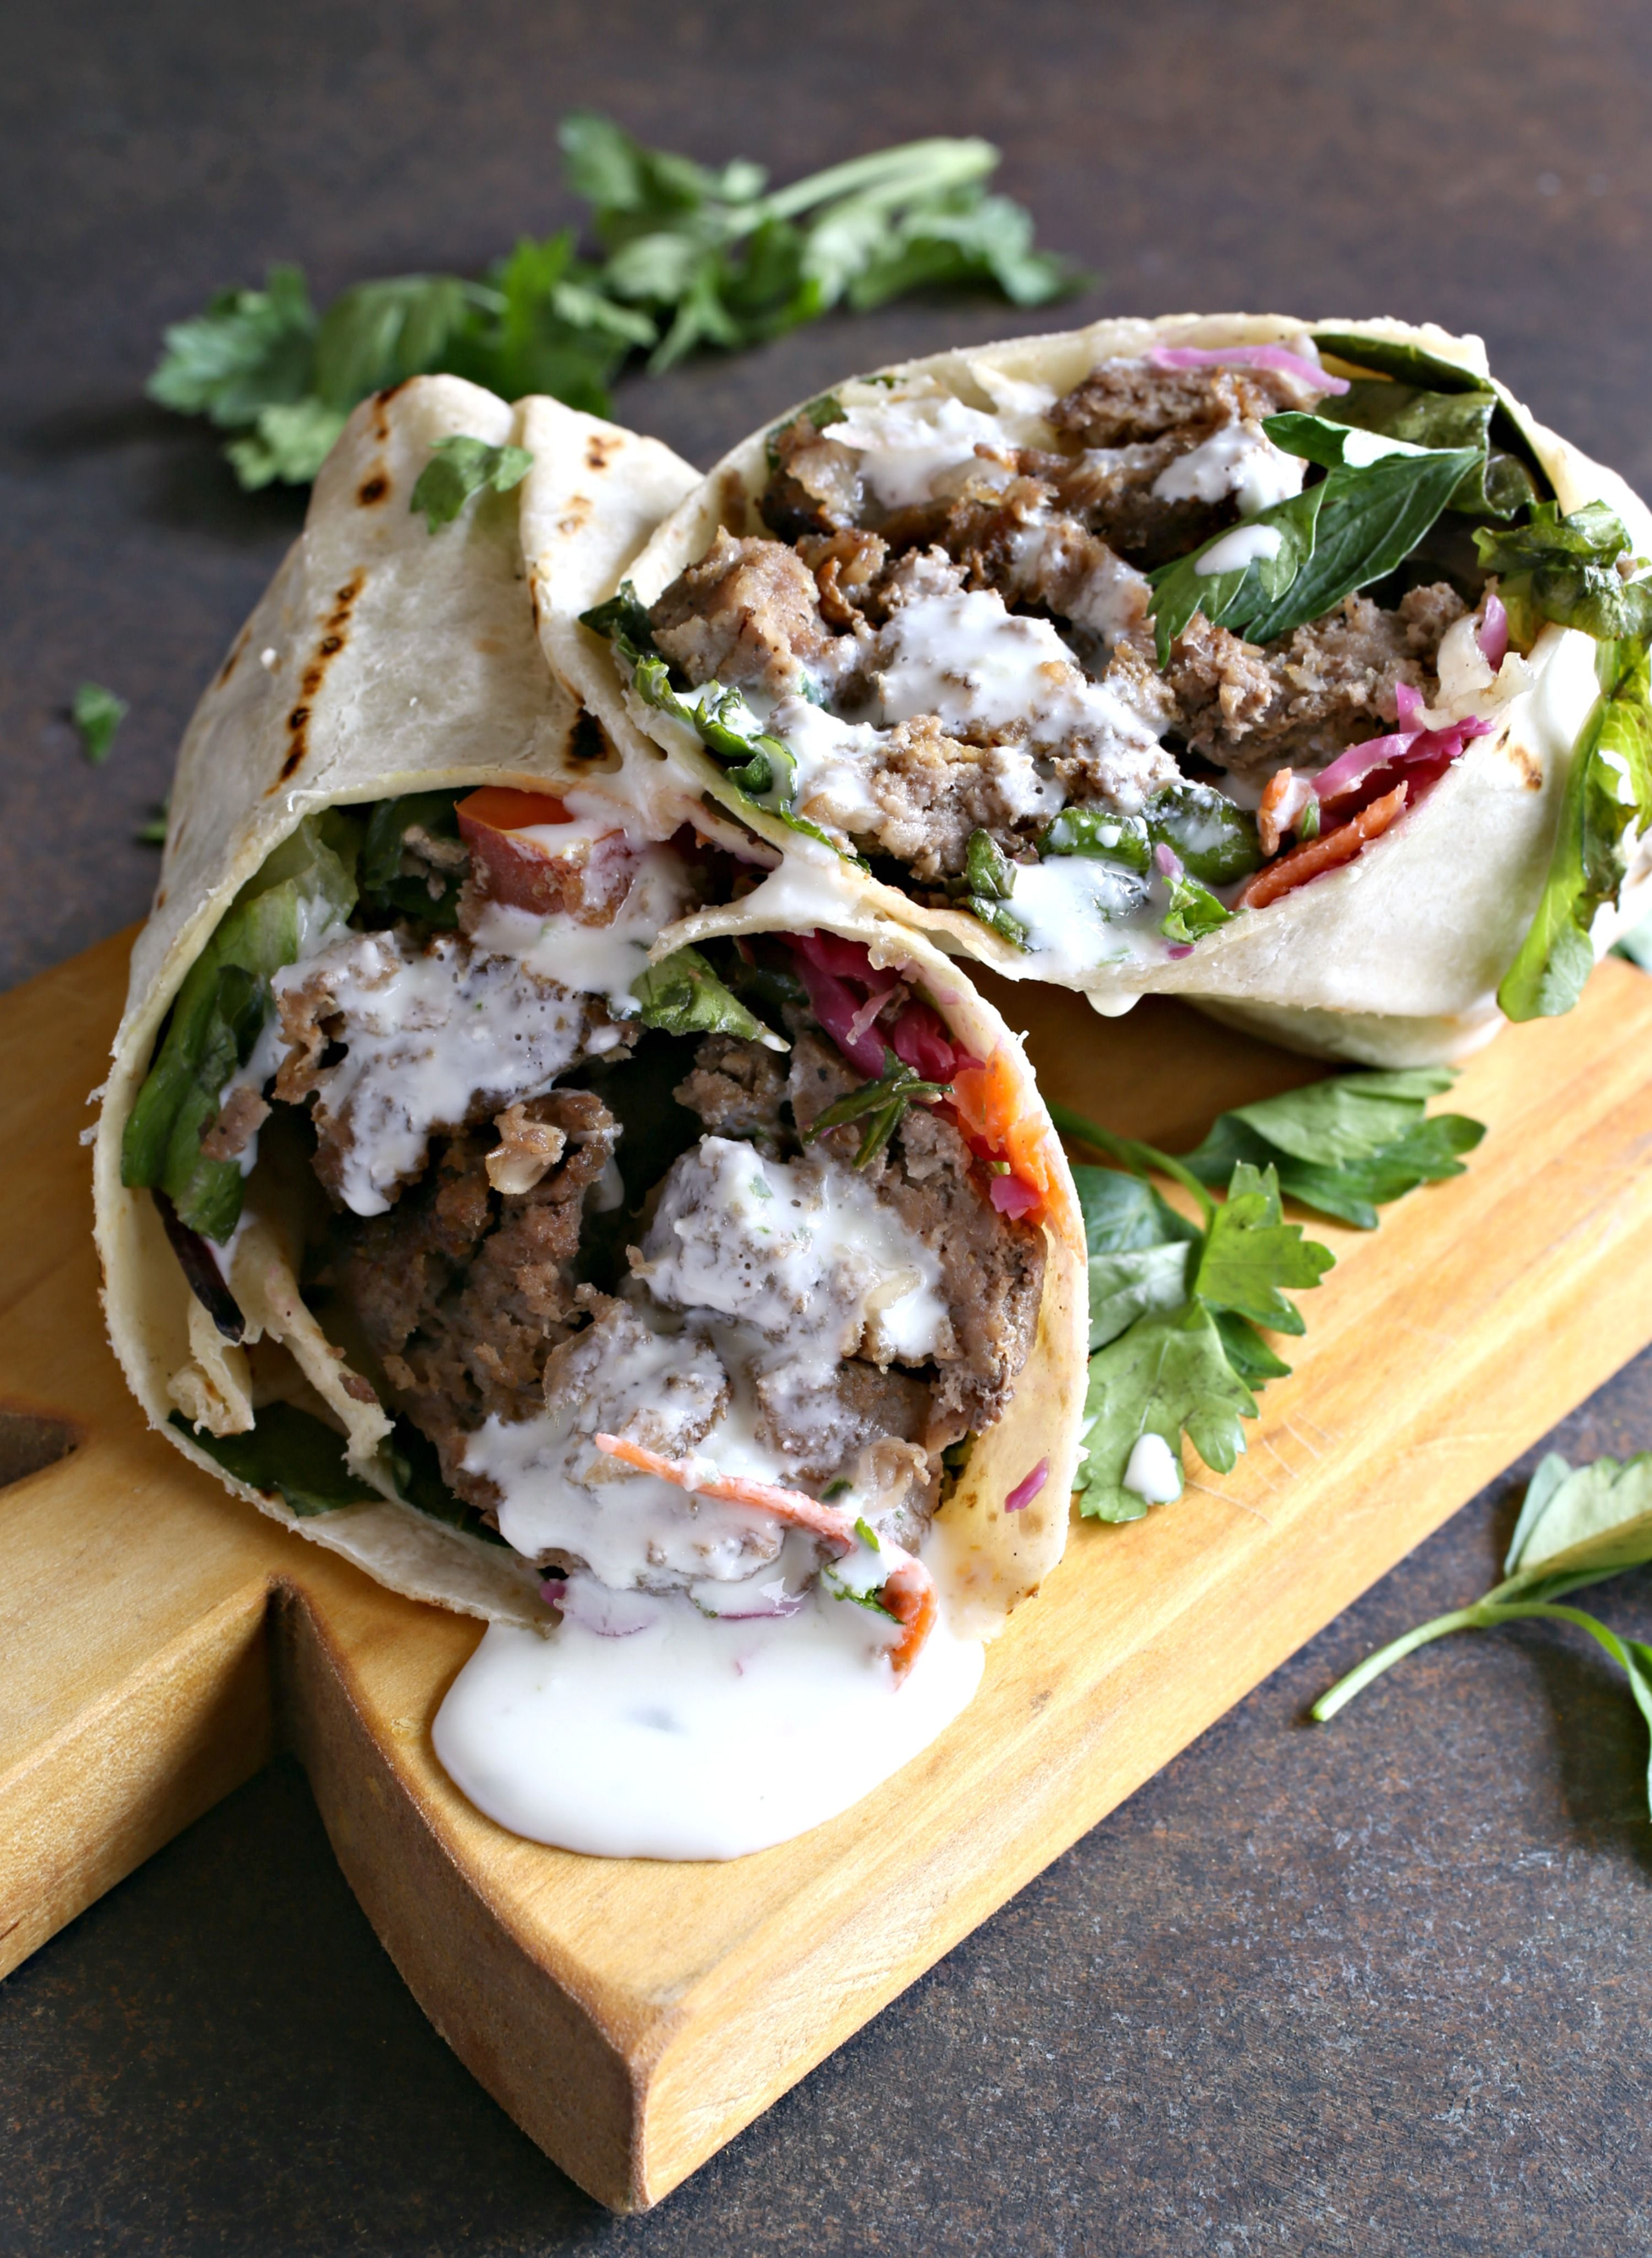 Homemade Doner Kebab Recipe Recipe Kebab Recipes Middle Eastern Recipes Recipes